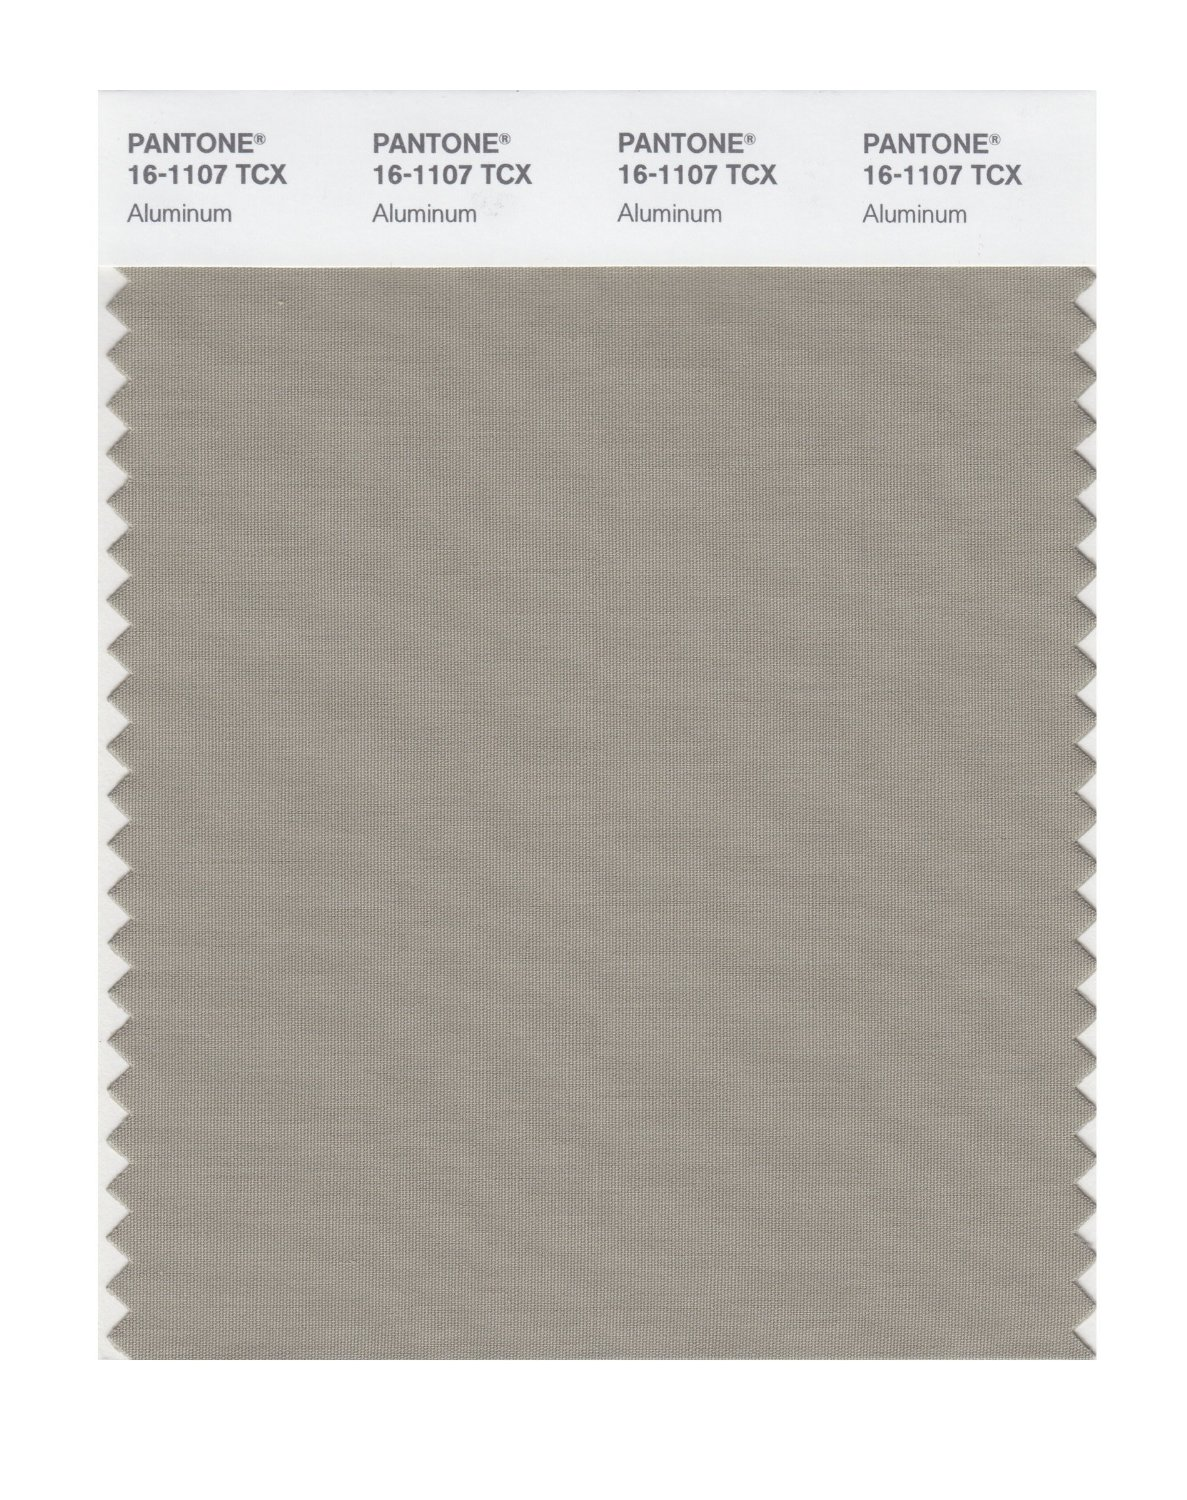 Pantone Smart Swatch 16-1107 Aluminum